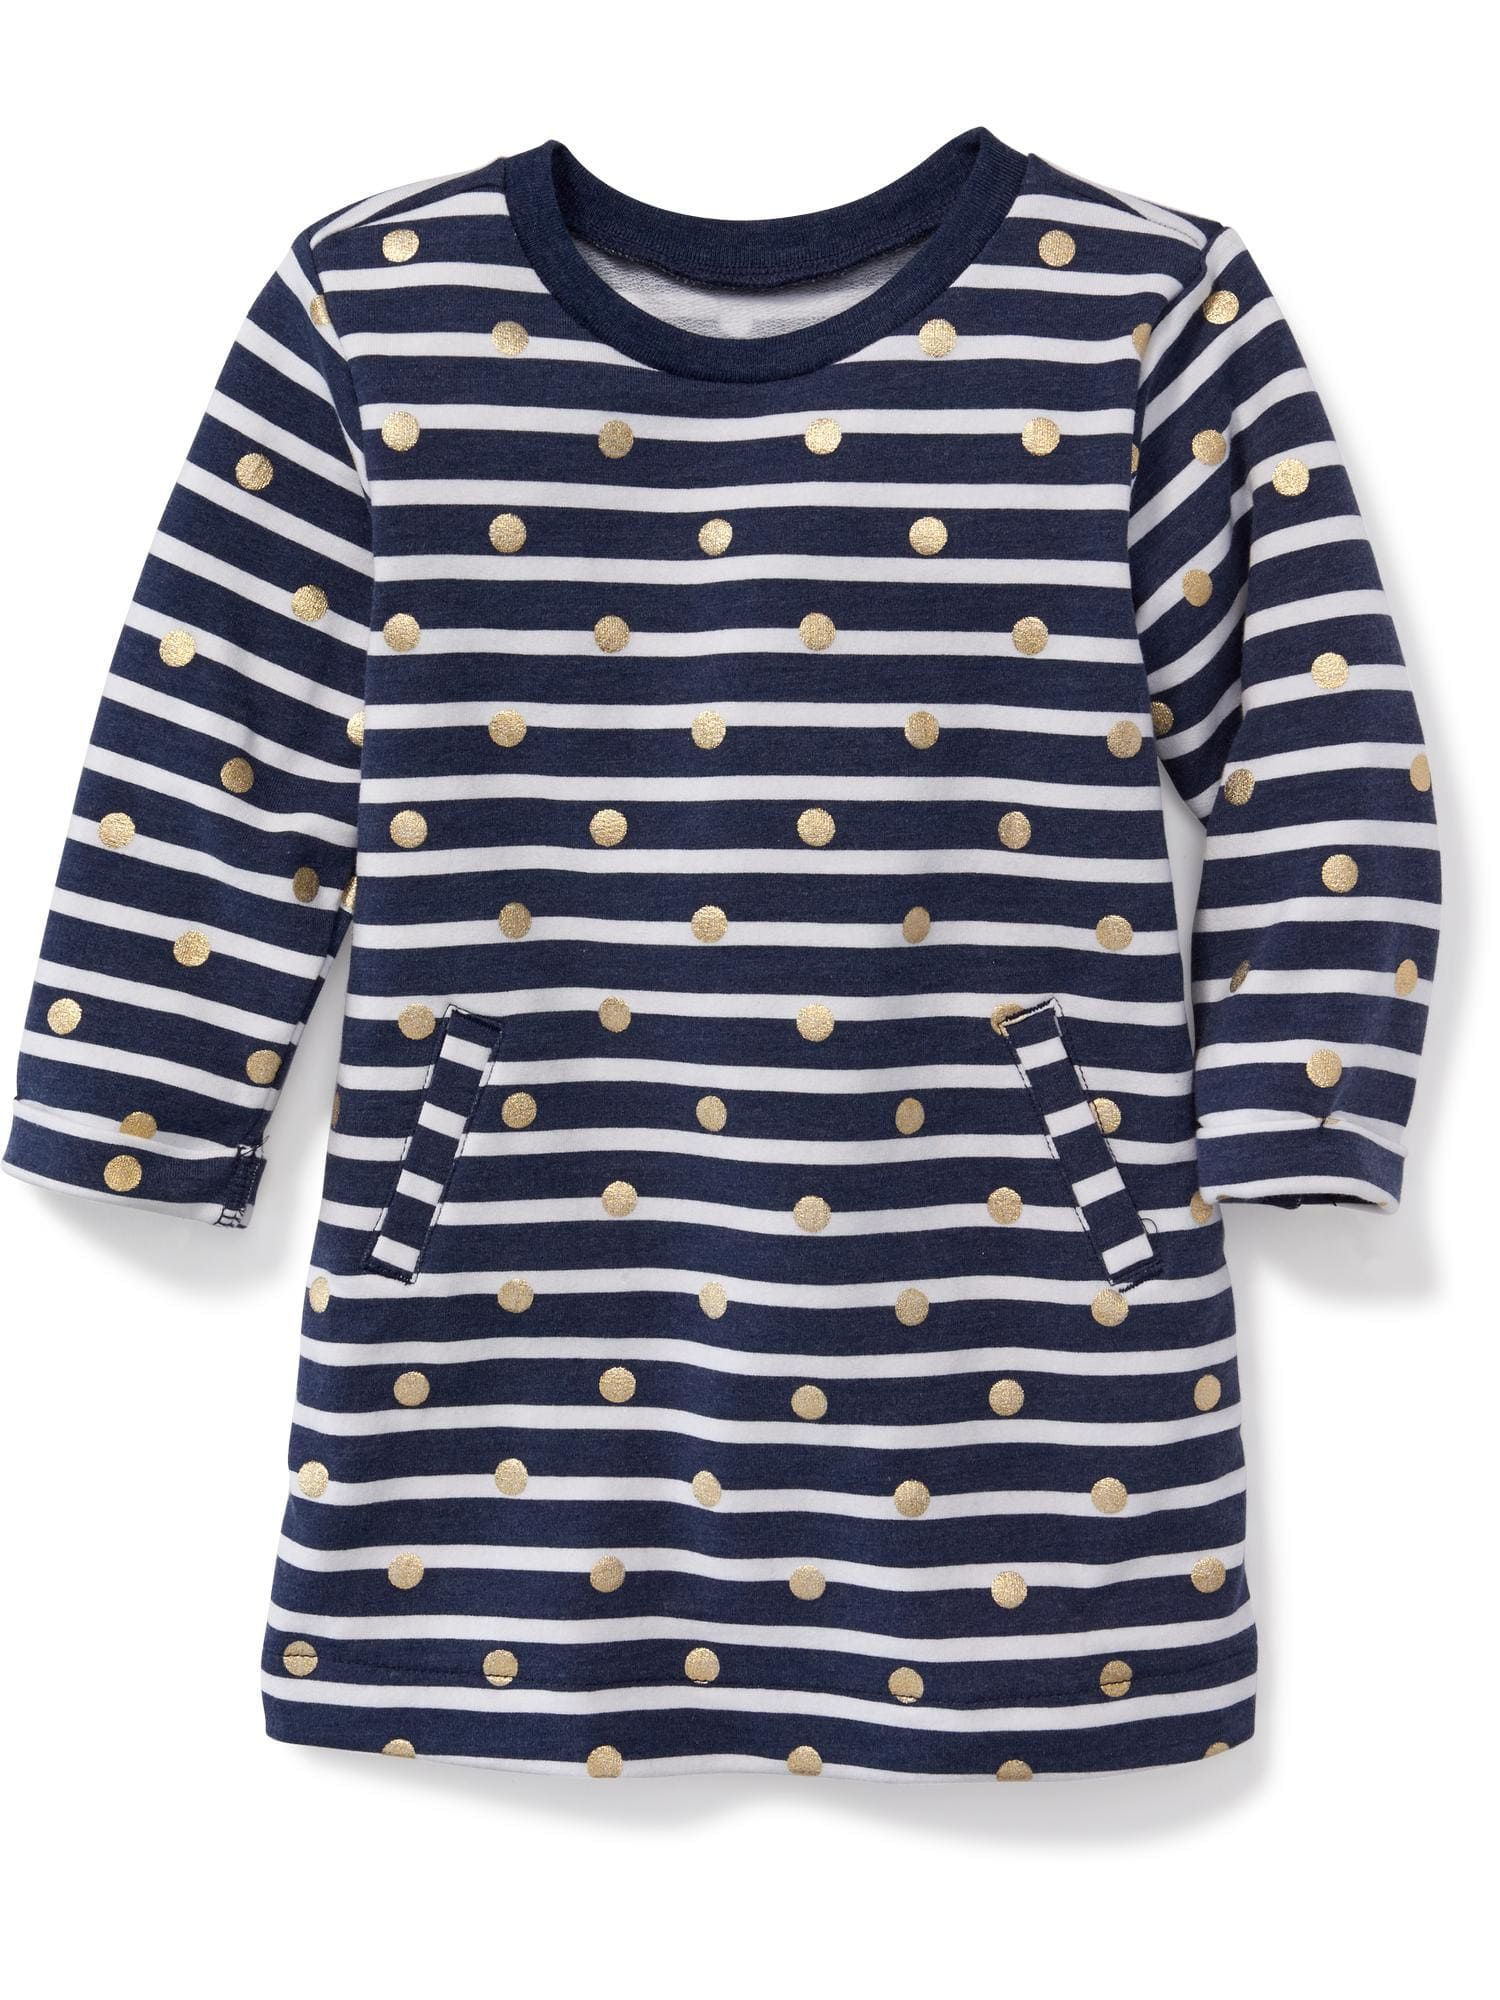 French Terry Dress for Baby Old Navy